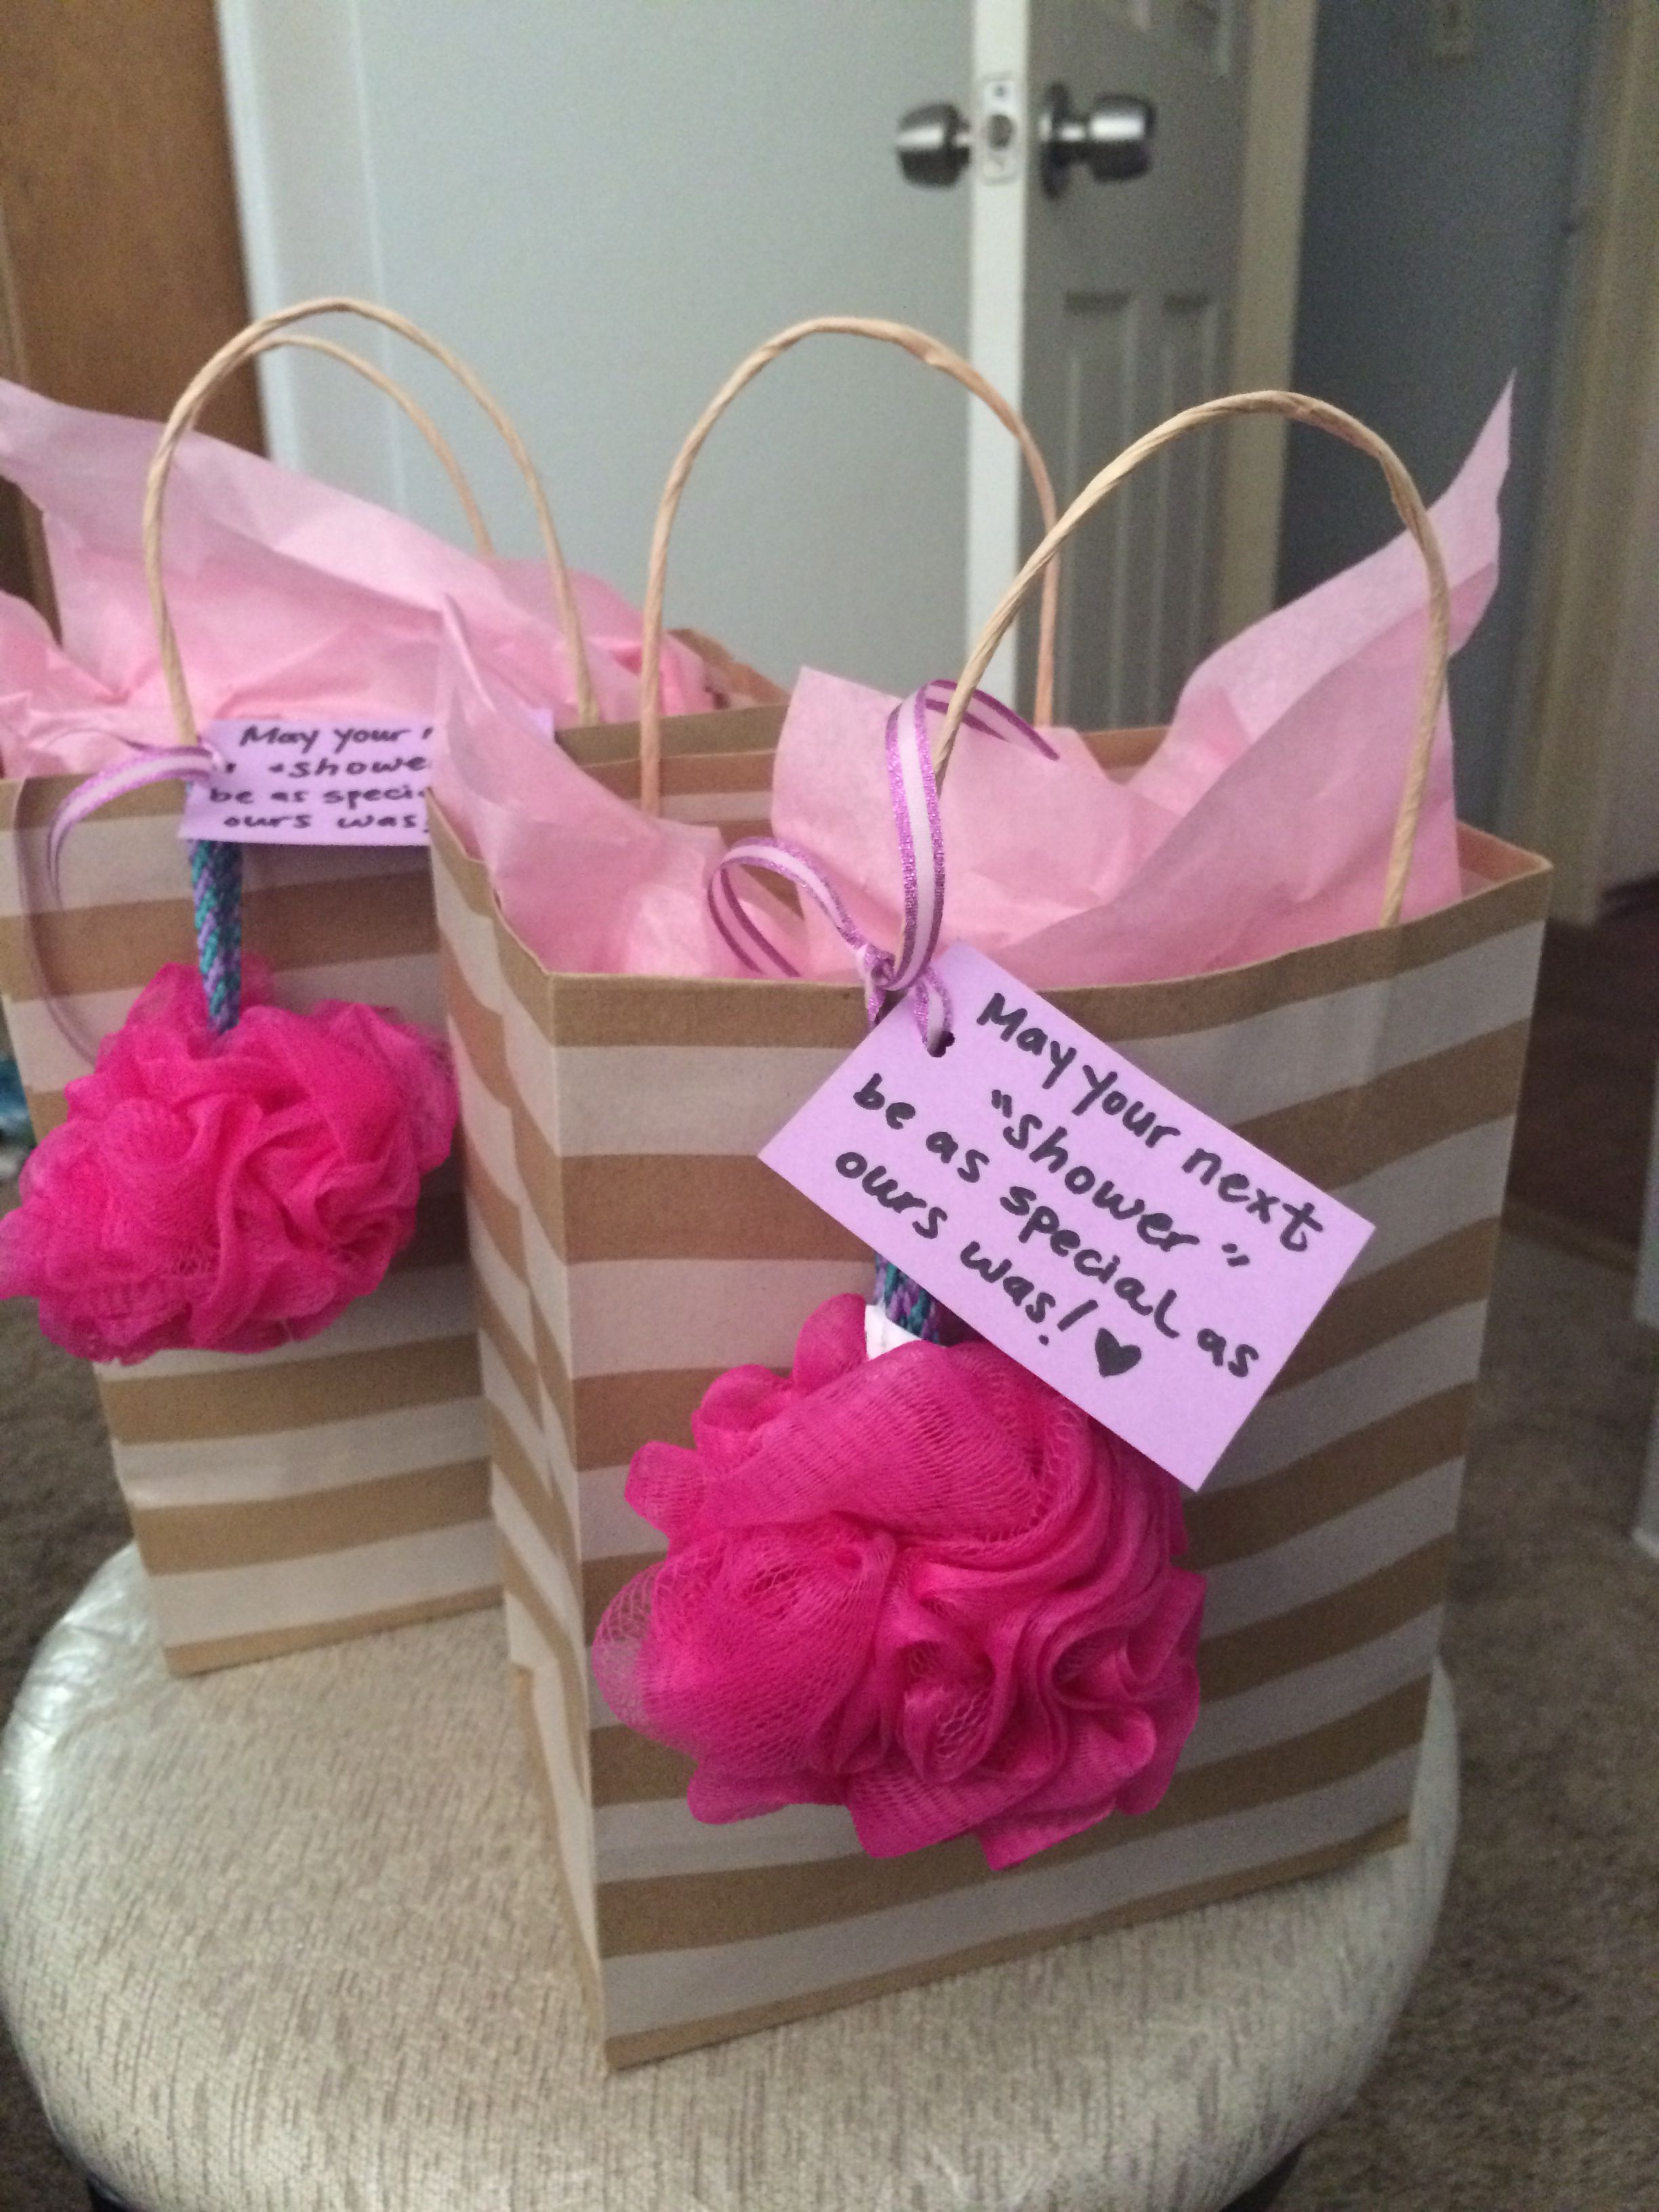 Baby shower hostess gifts include body wash facial